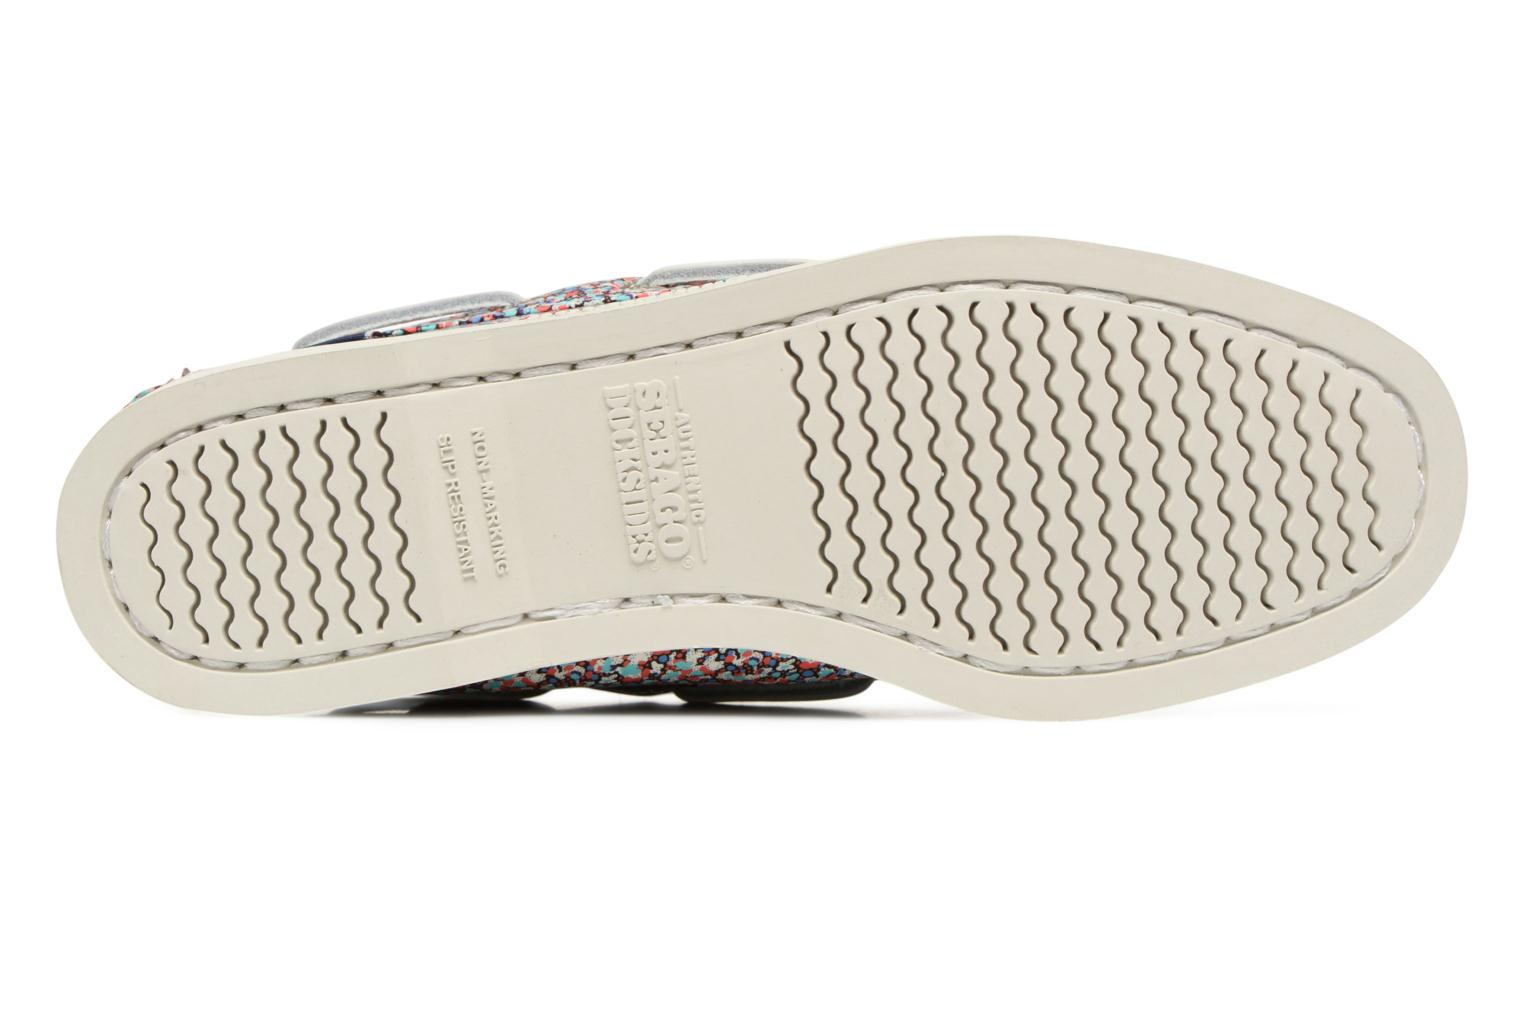 Lace-up shoes Sebago Docksides Liberty Multicolor view from above